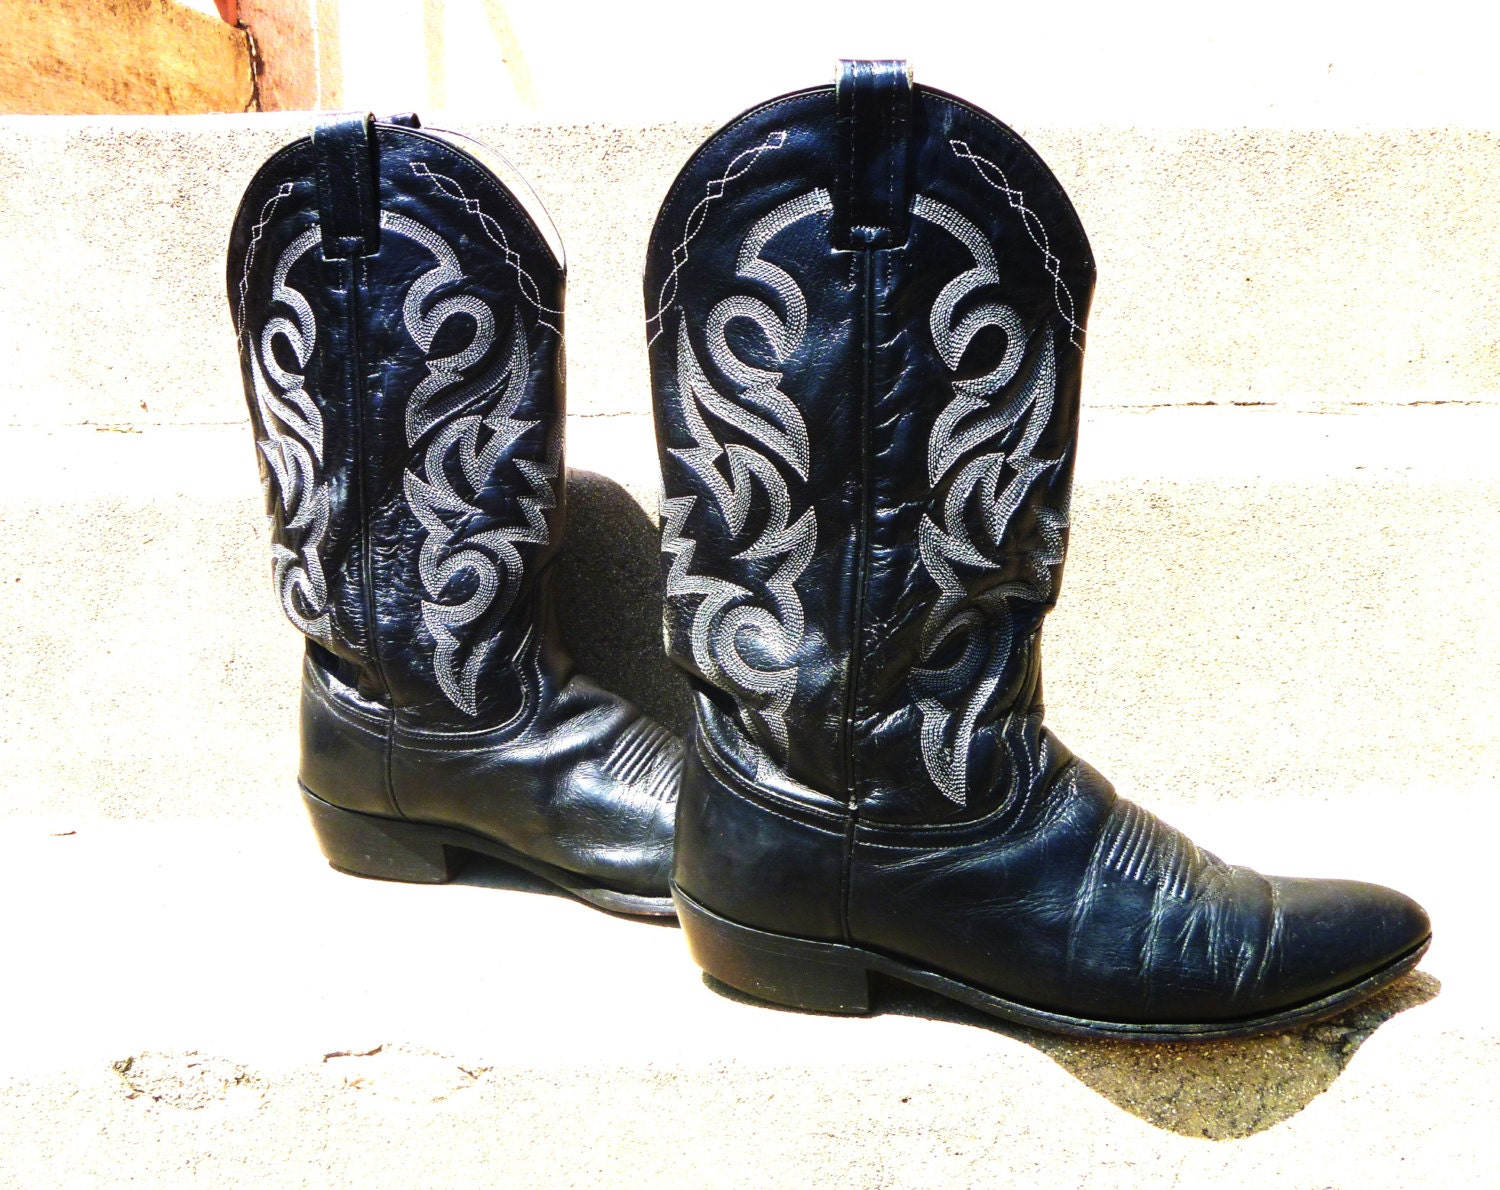 vintage western cowboy boots with stacked heel embroidered